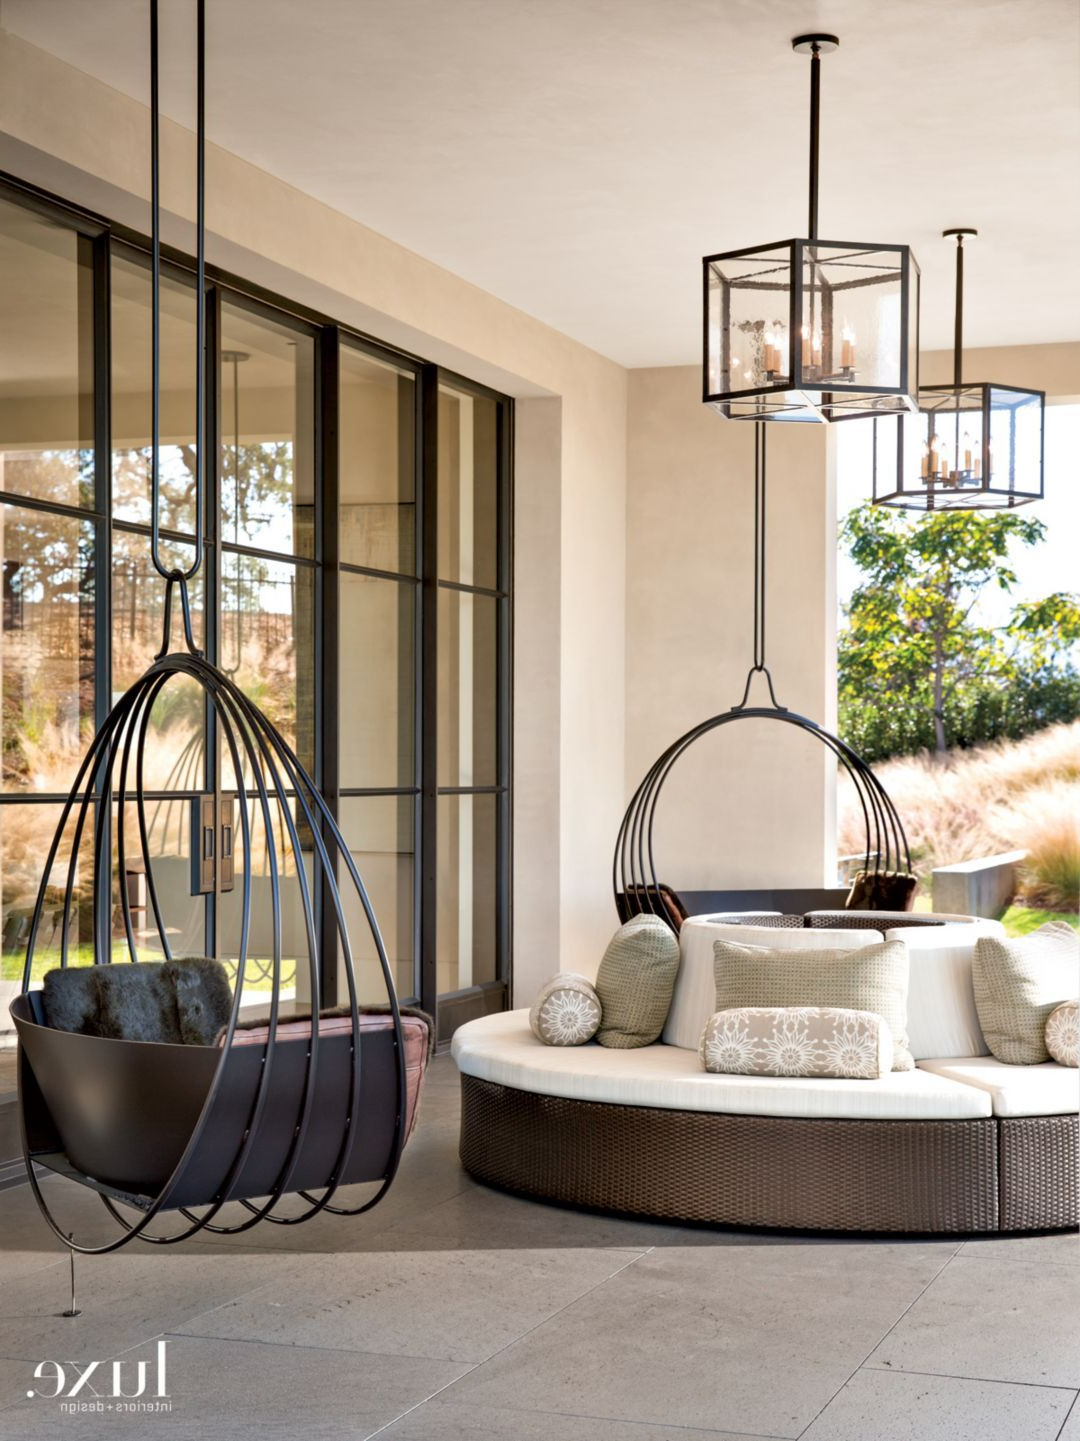 Most Recently Released Modern Outdoor Seating From Top Like Seats That Twirl Around With Lamp Outdoor Porch Swings (View 14 of 25)